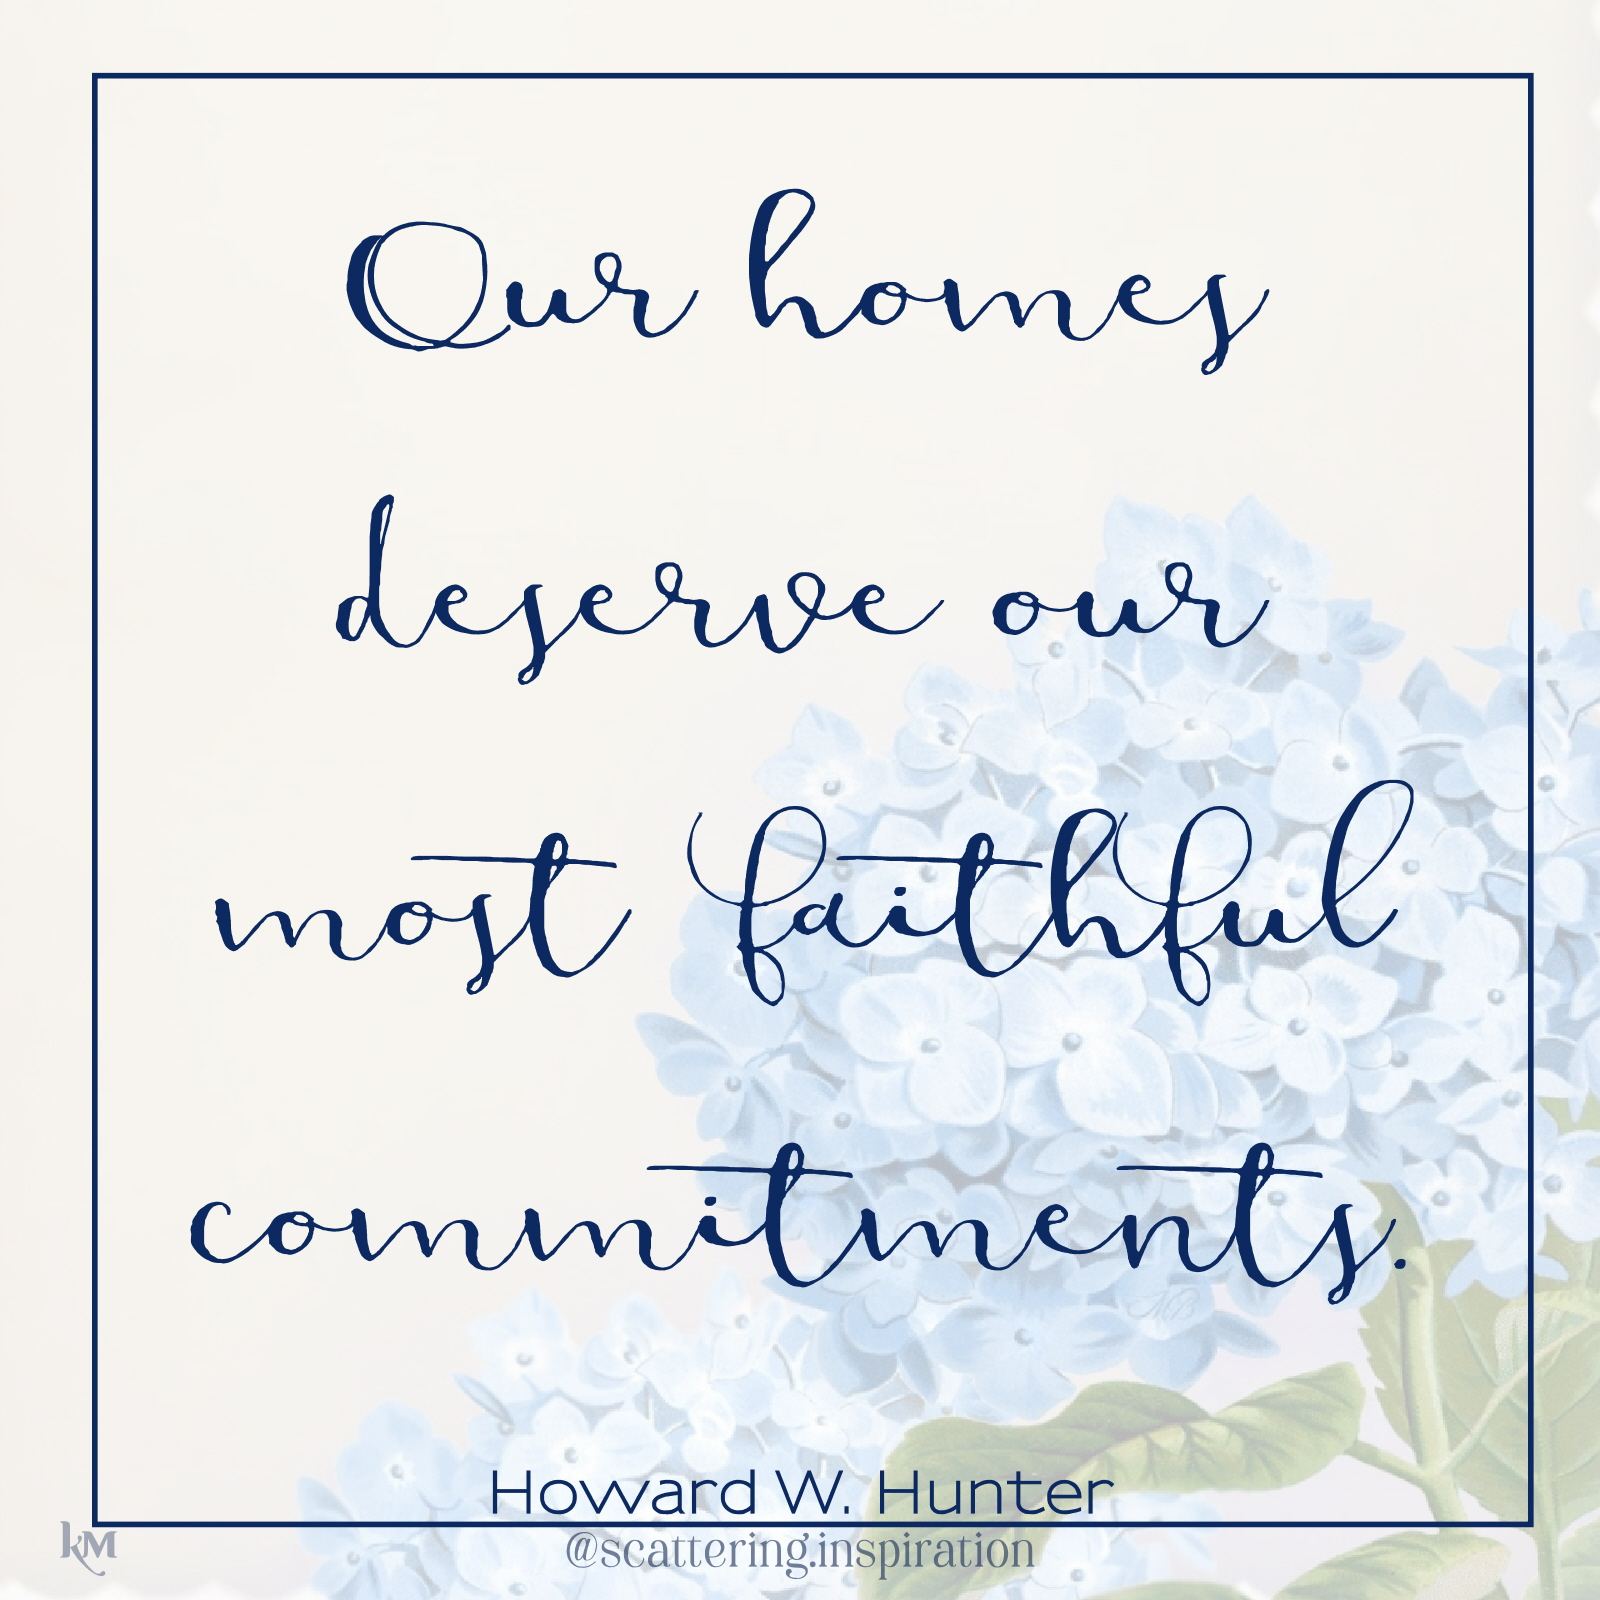 our most faithful commitments